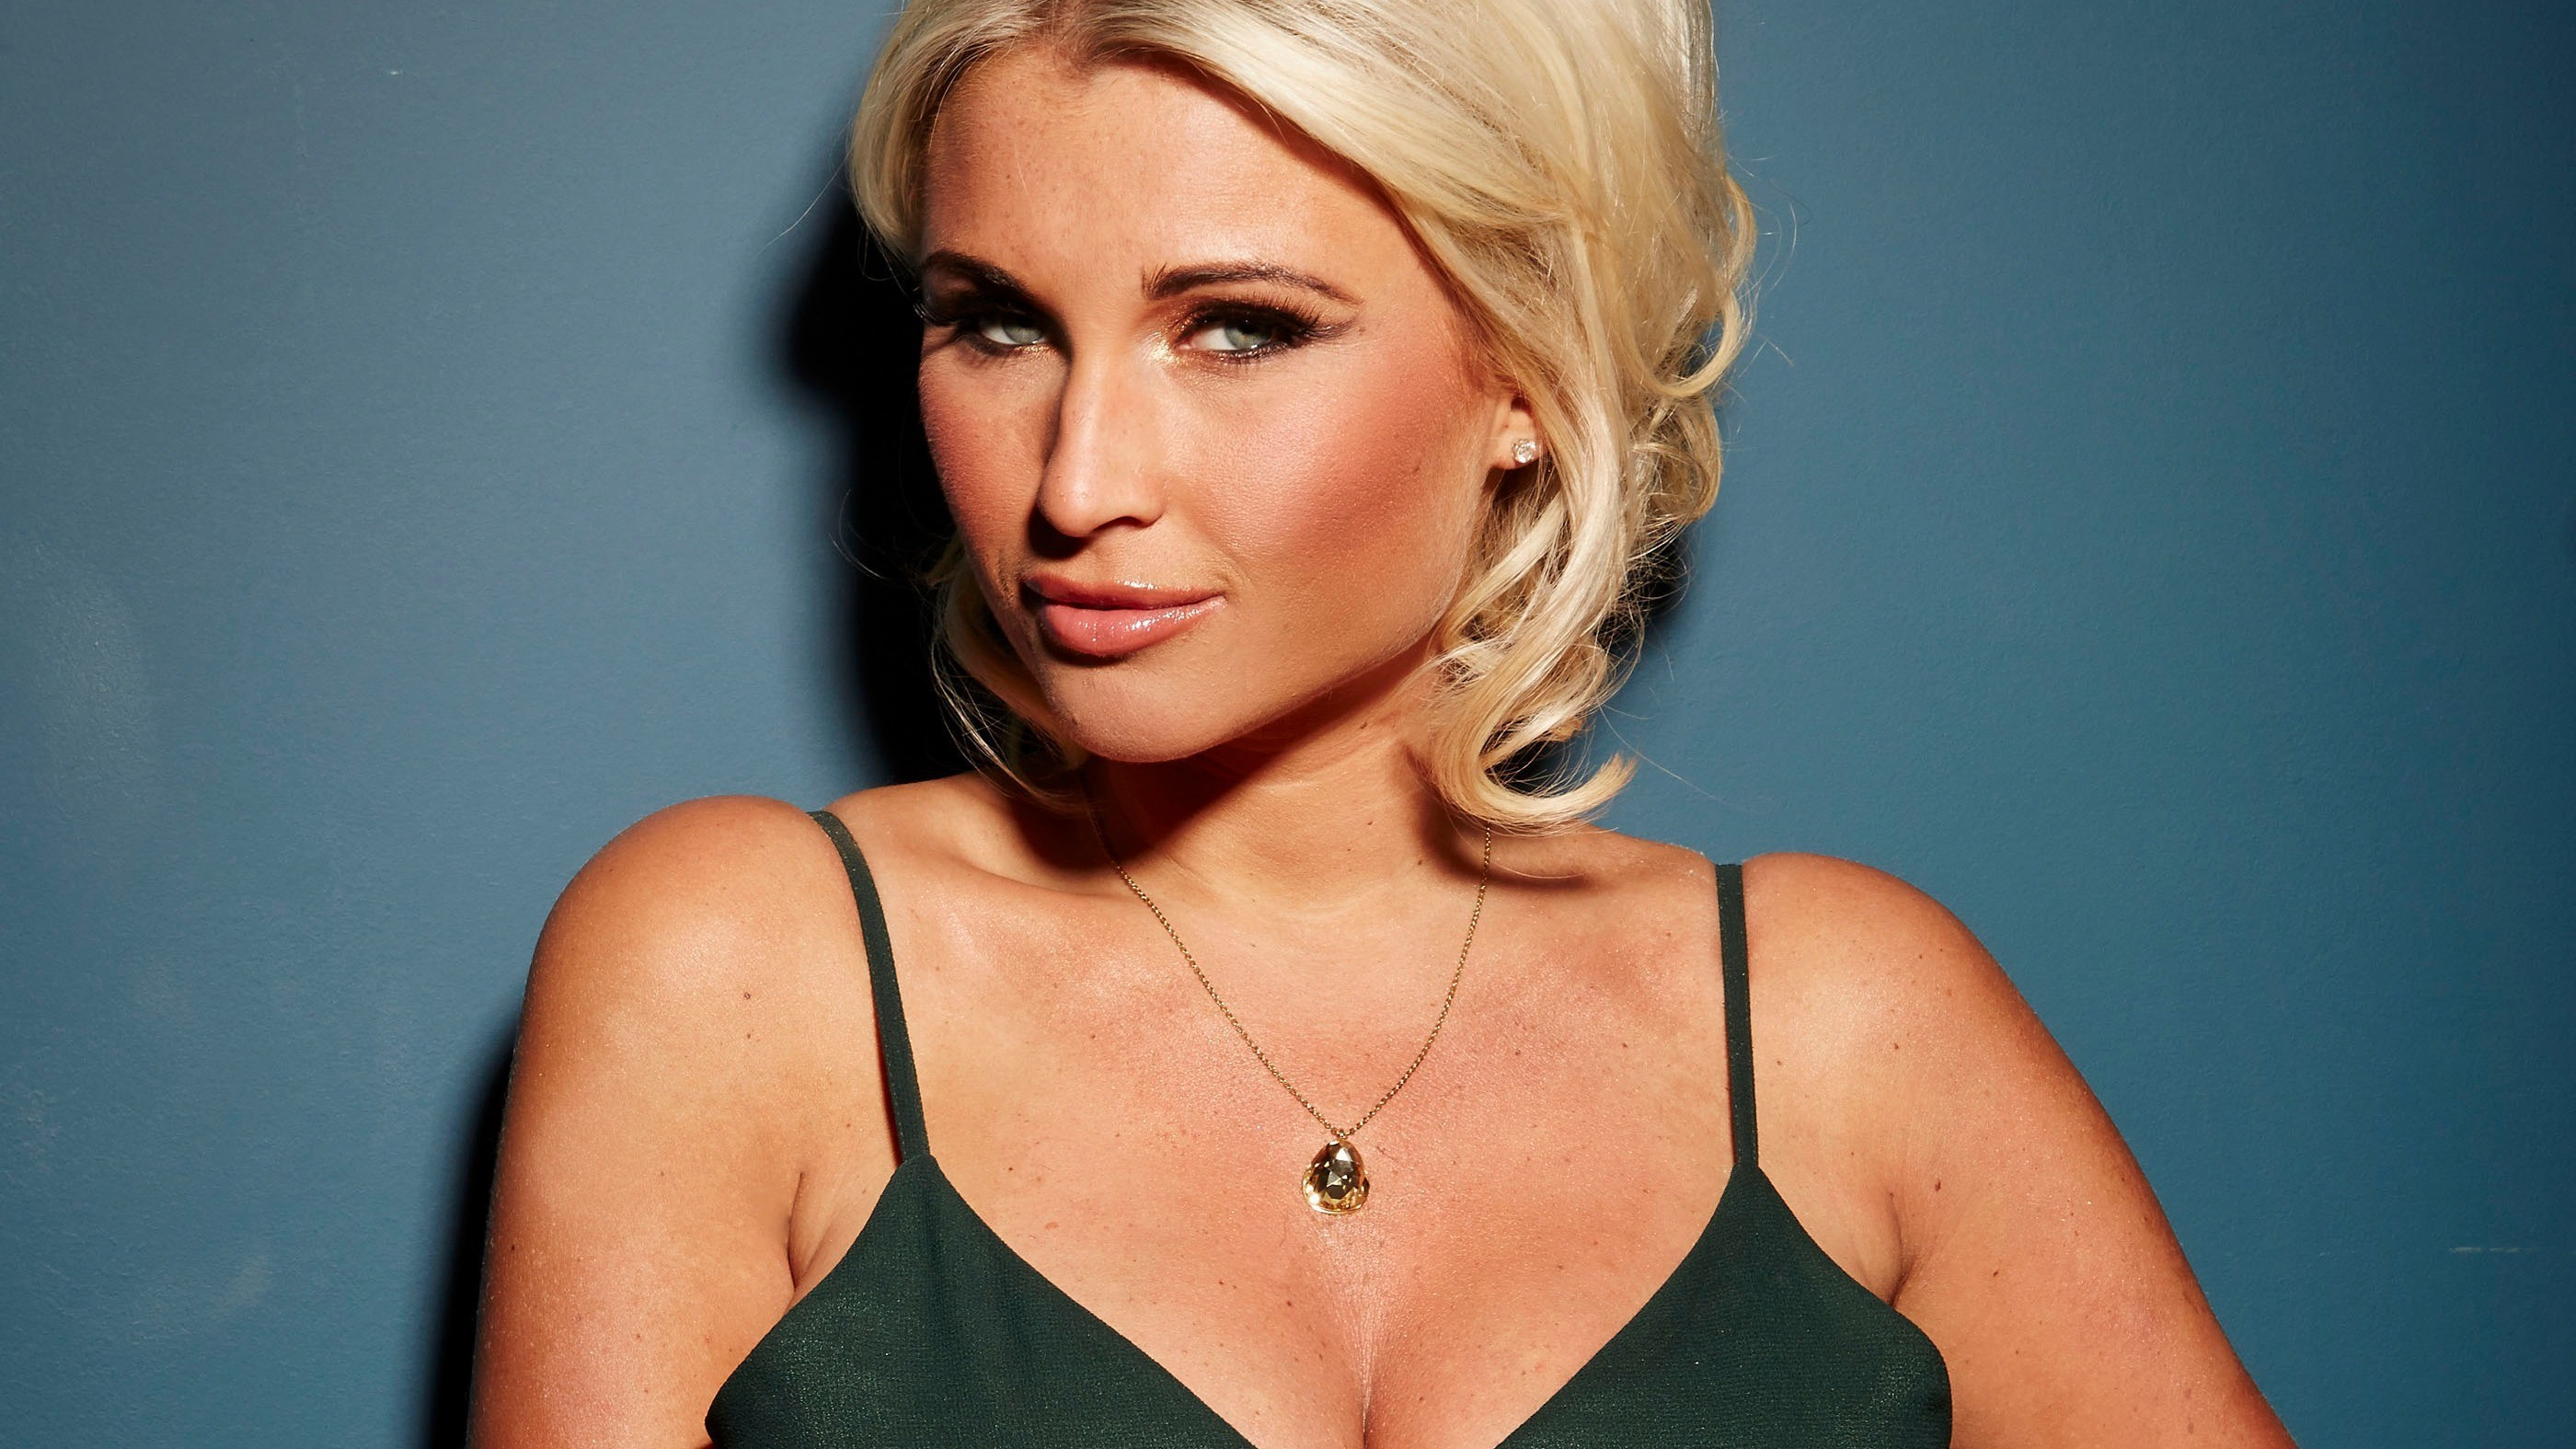 Billie Faiers Wallpapers Images Photos Pictures Backgrounds